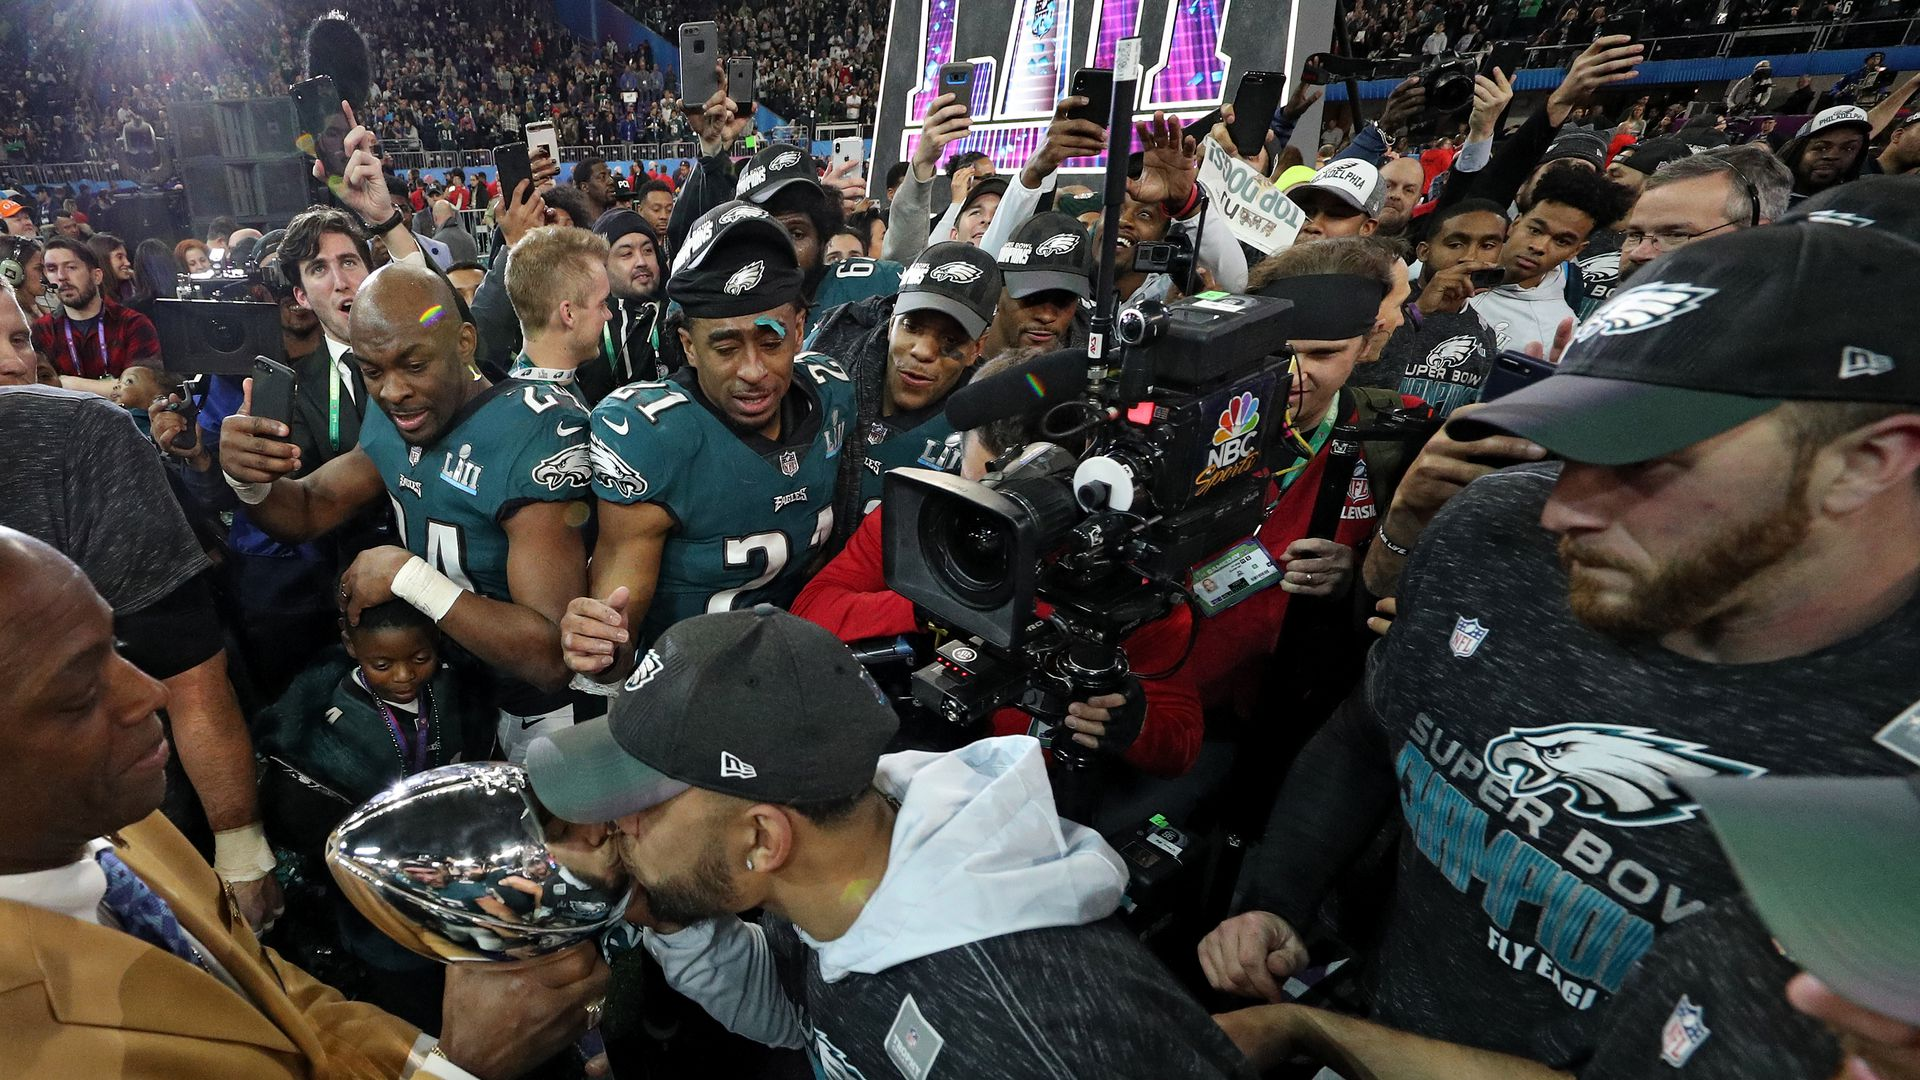 Philadelphia Eagles players kiss the Lombardi Trophy after defeating the New England Patriots in Super Bowl LII in February.